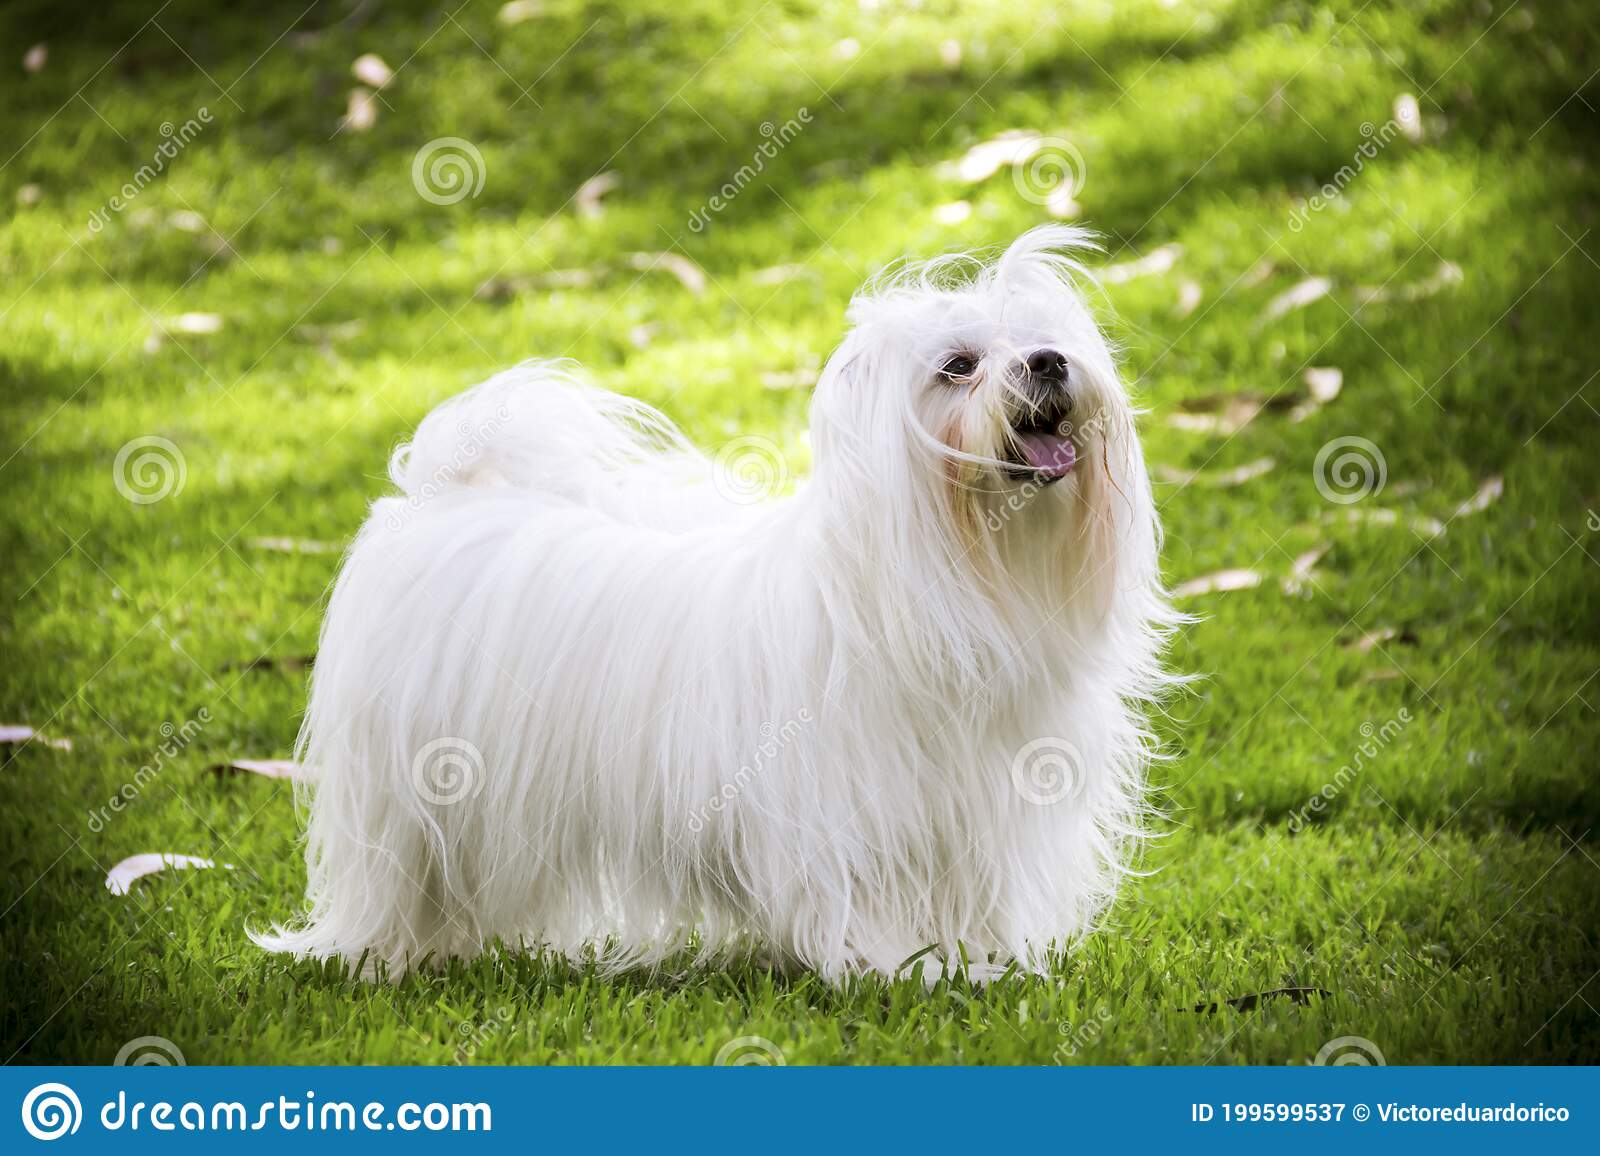 Maltese Shitzu Photos Free Royalty Free Stock Photos From Dreamstime